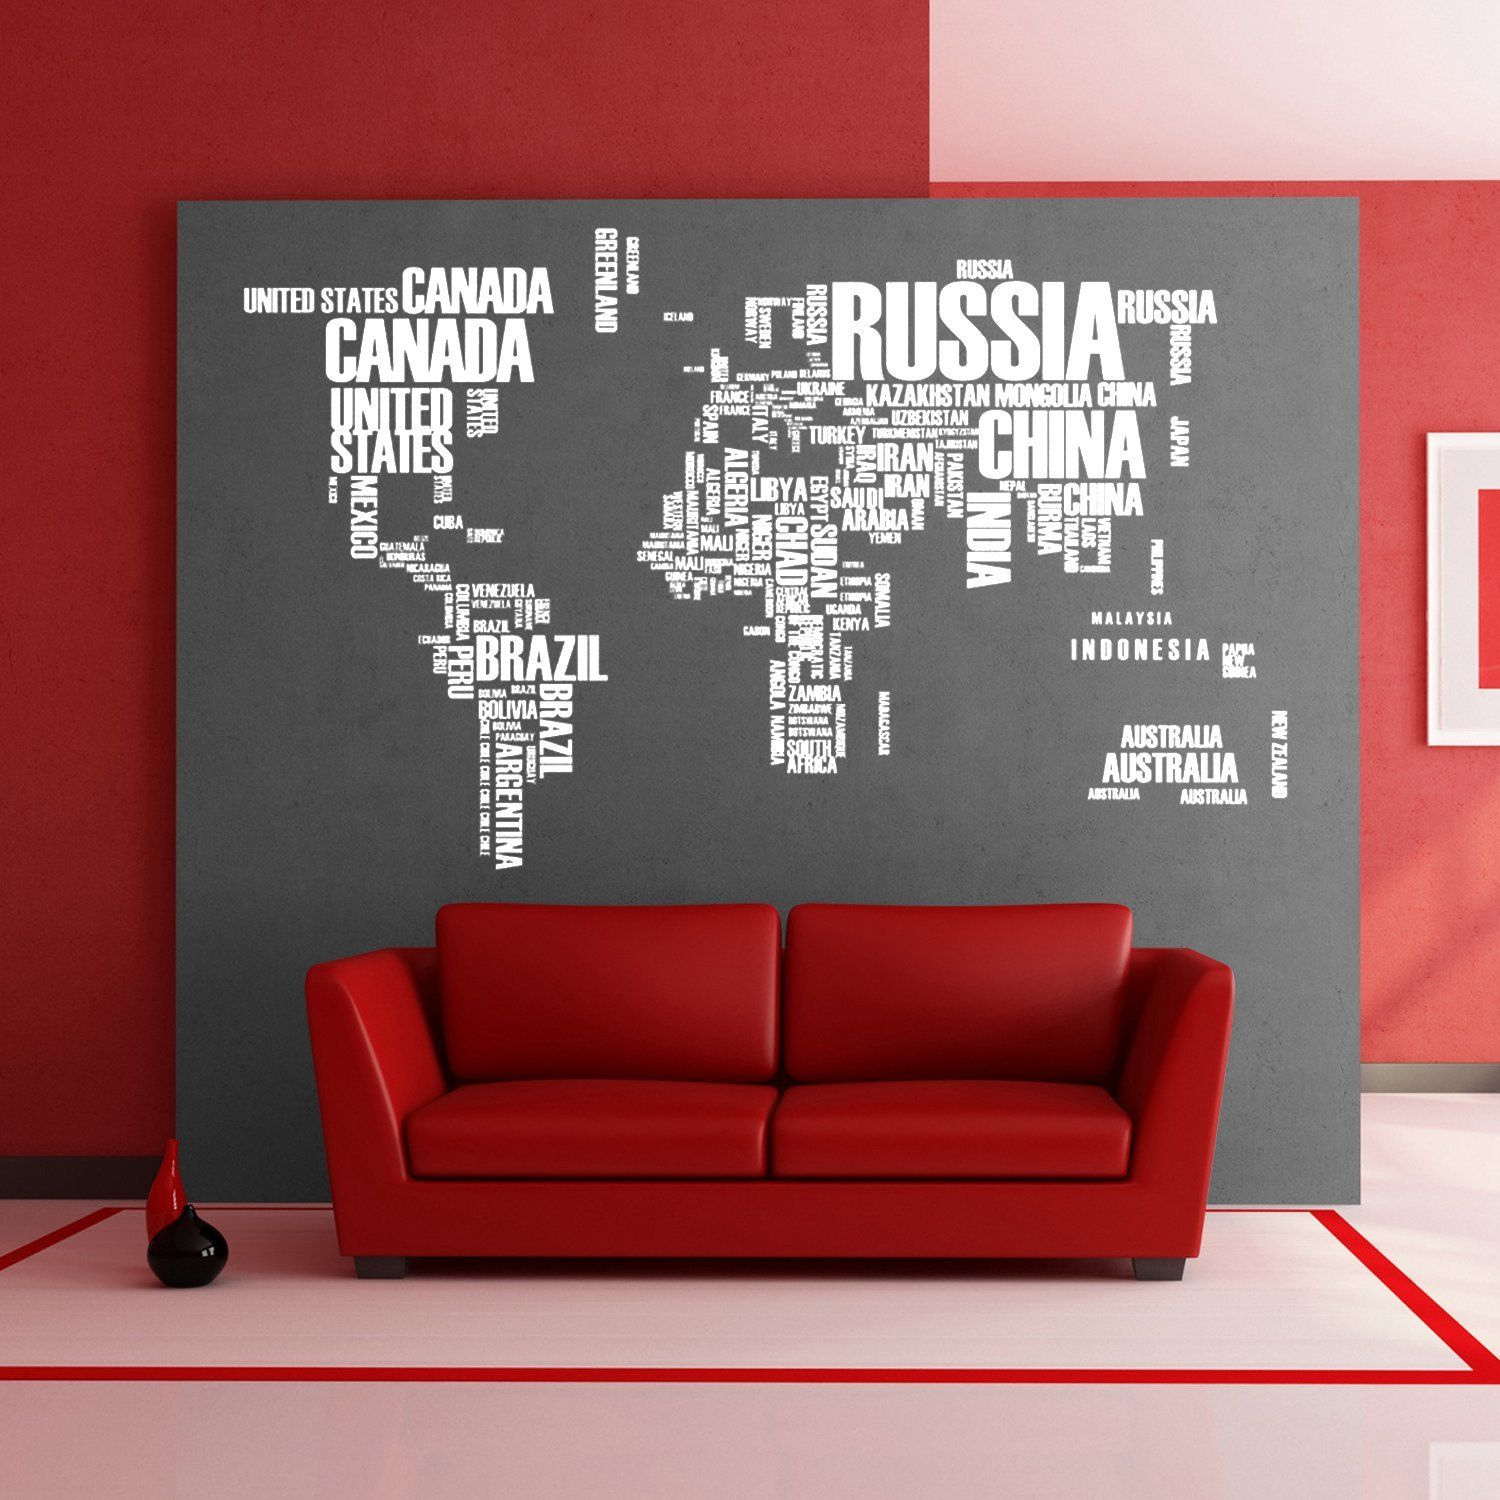 Fabulous large world map pvc wall decal stickers original creative fabulous large world map pvc wall decal stickers original creative letters map wall art vinyl wall stickers for office home decorations for living room gumiabroncs